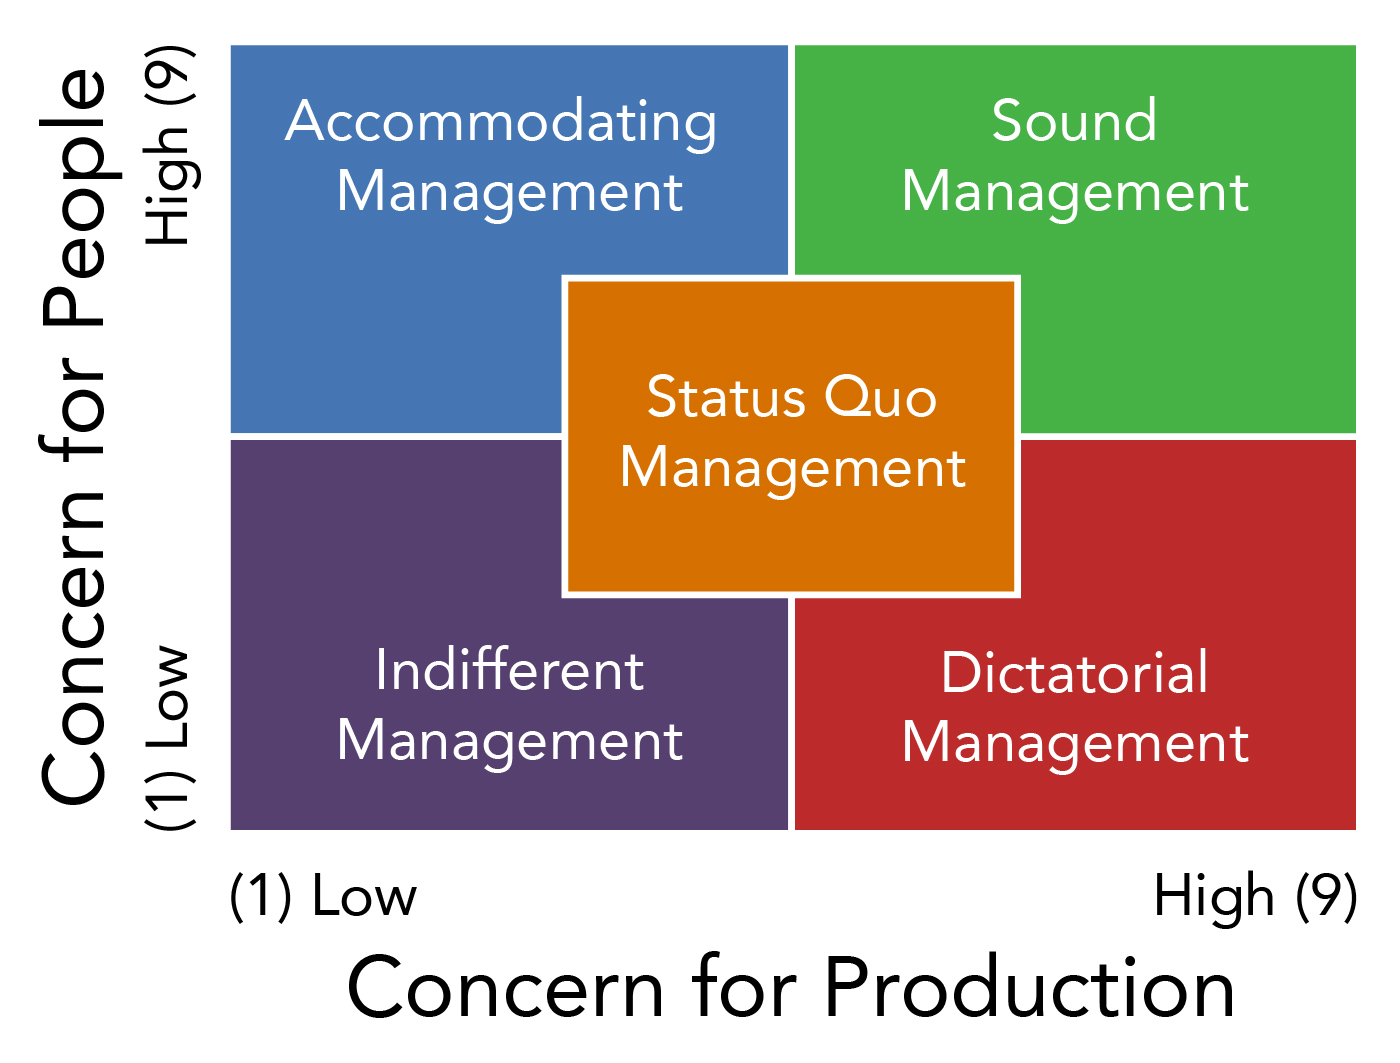 Blake and Mouton's Managerial Grid. The x-axis has concern for production, rated from low (one) to high (nine). The y-axis has concern for people, rated from low (one) to high (nine). There are five types of management on the grid. Indifferent management has low concern for production and low concern for people. Accommodating management has low concern for production and high concern for people. Dictatorial management has high concern for production and low concern for people. Sound management has high concern for production and high concern for people.